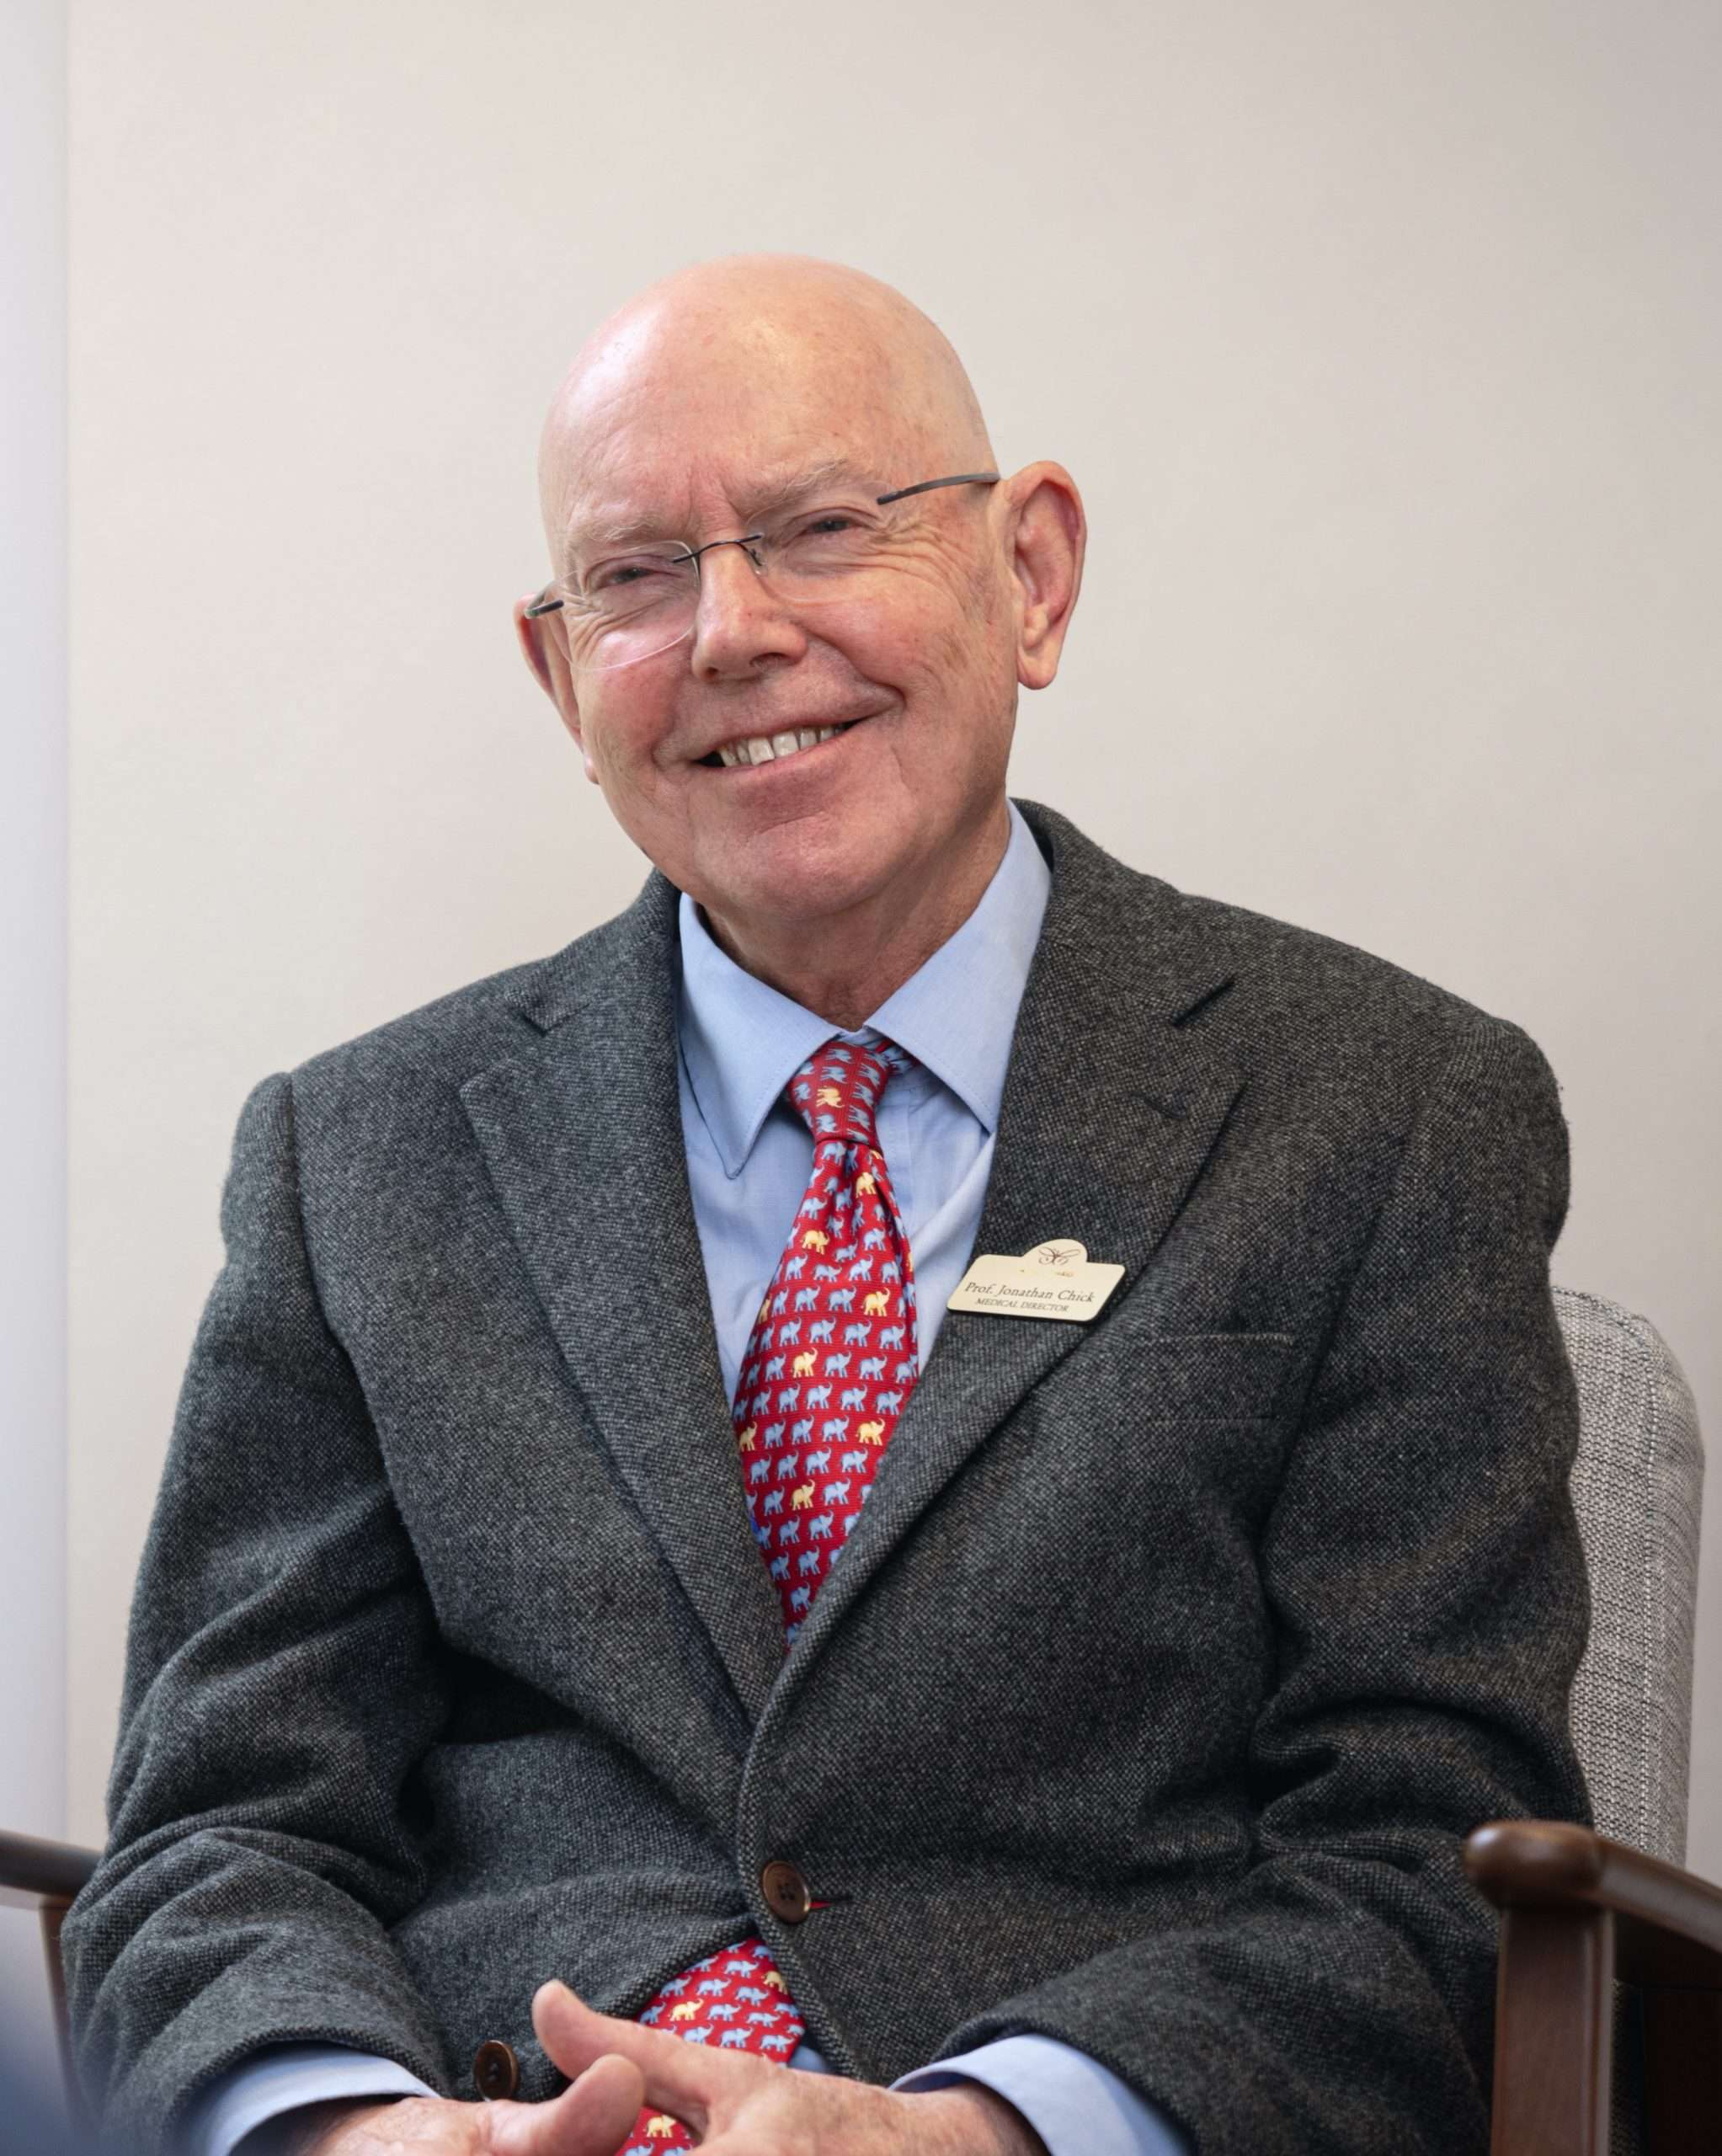 Picture of Prof. Jonathan Chick, MA (Cantab), MPhil, MBChB, DSc, FRCPsych, FRCPE